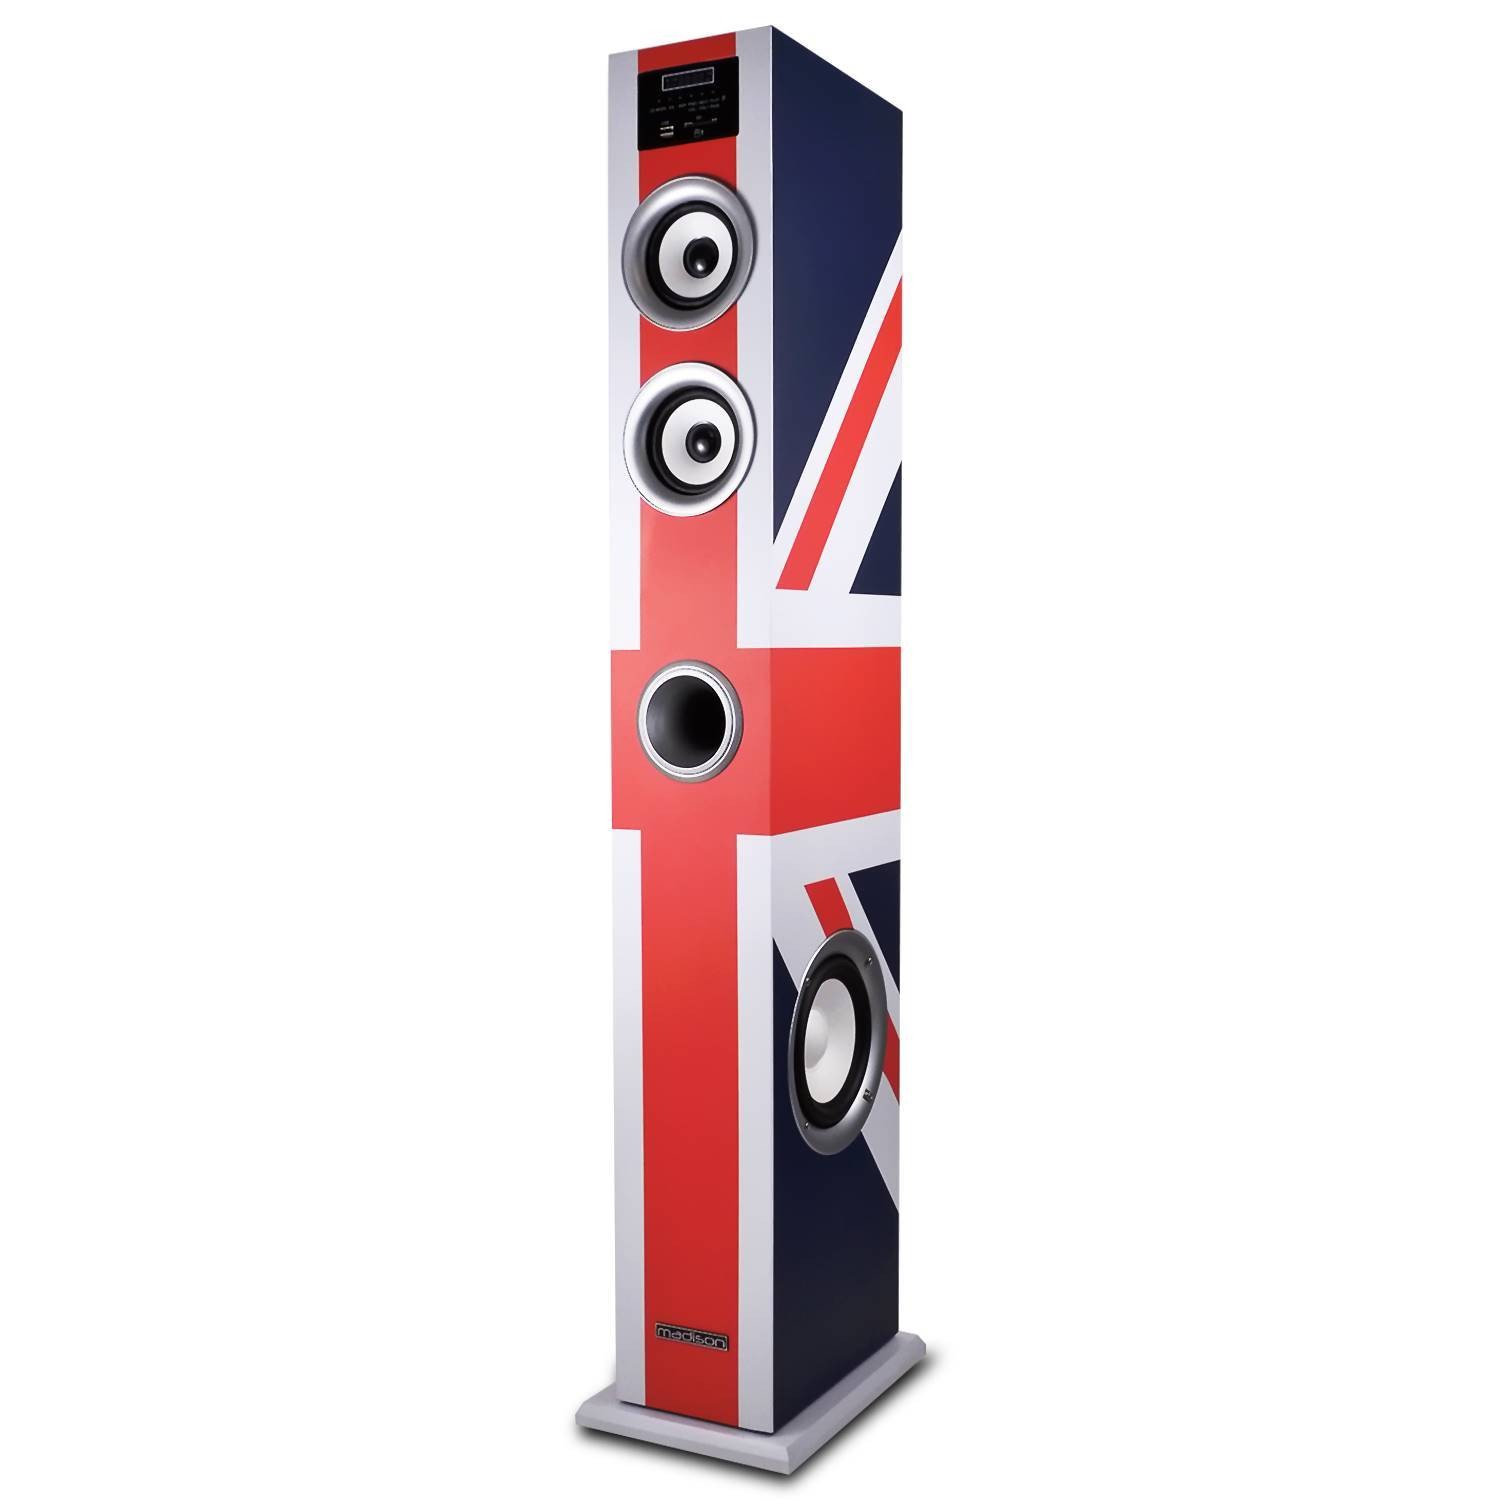 Madison MAD-CENTER100-UK Colonne multimédia amplifiée 100W FM/USB/SD/BT drapeau Royaume-Uni